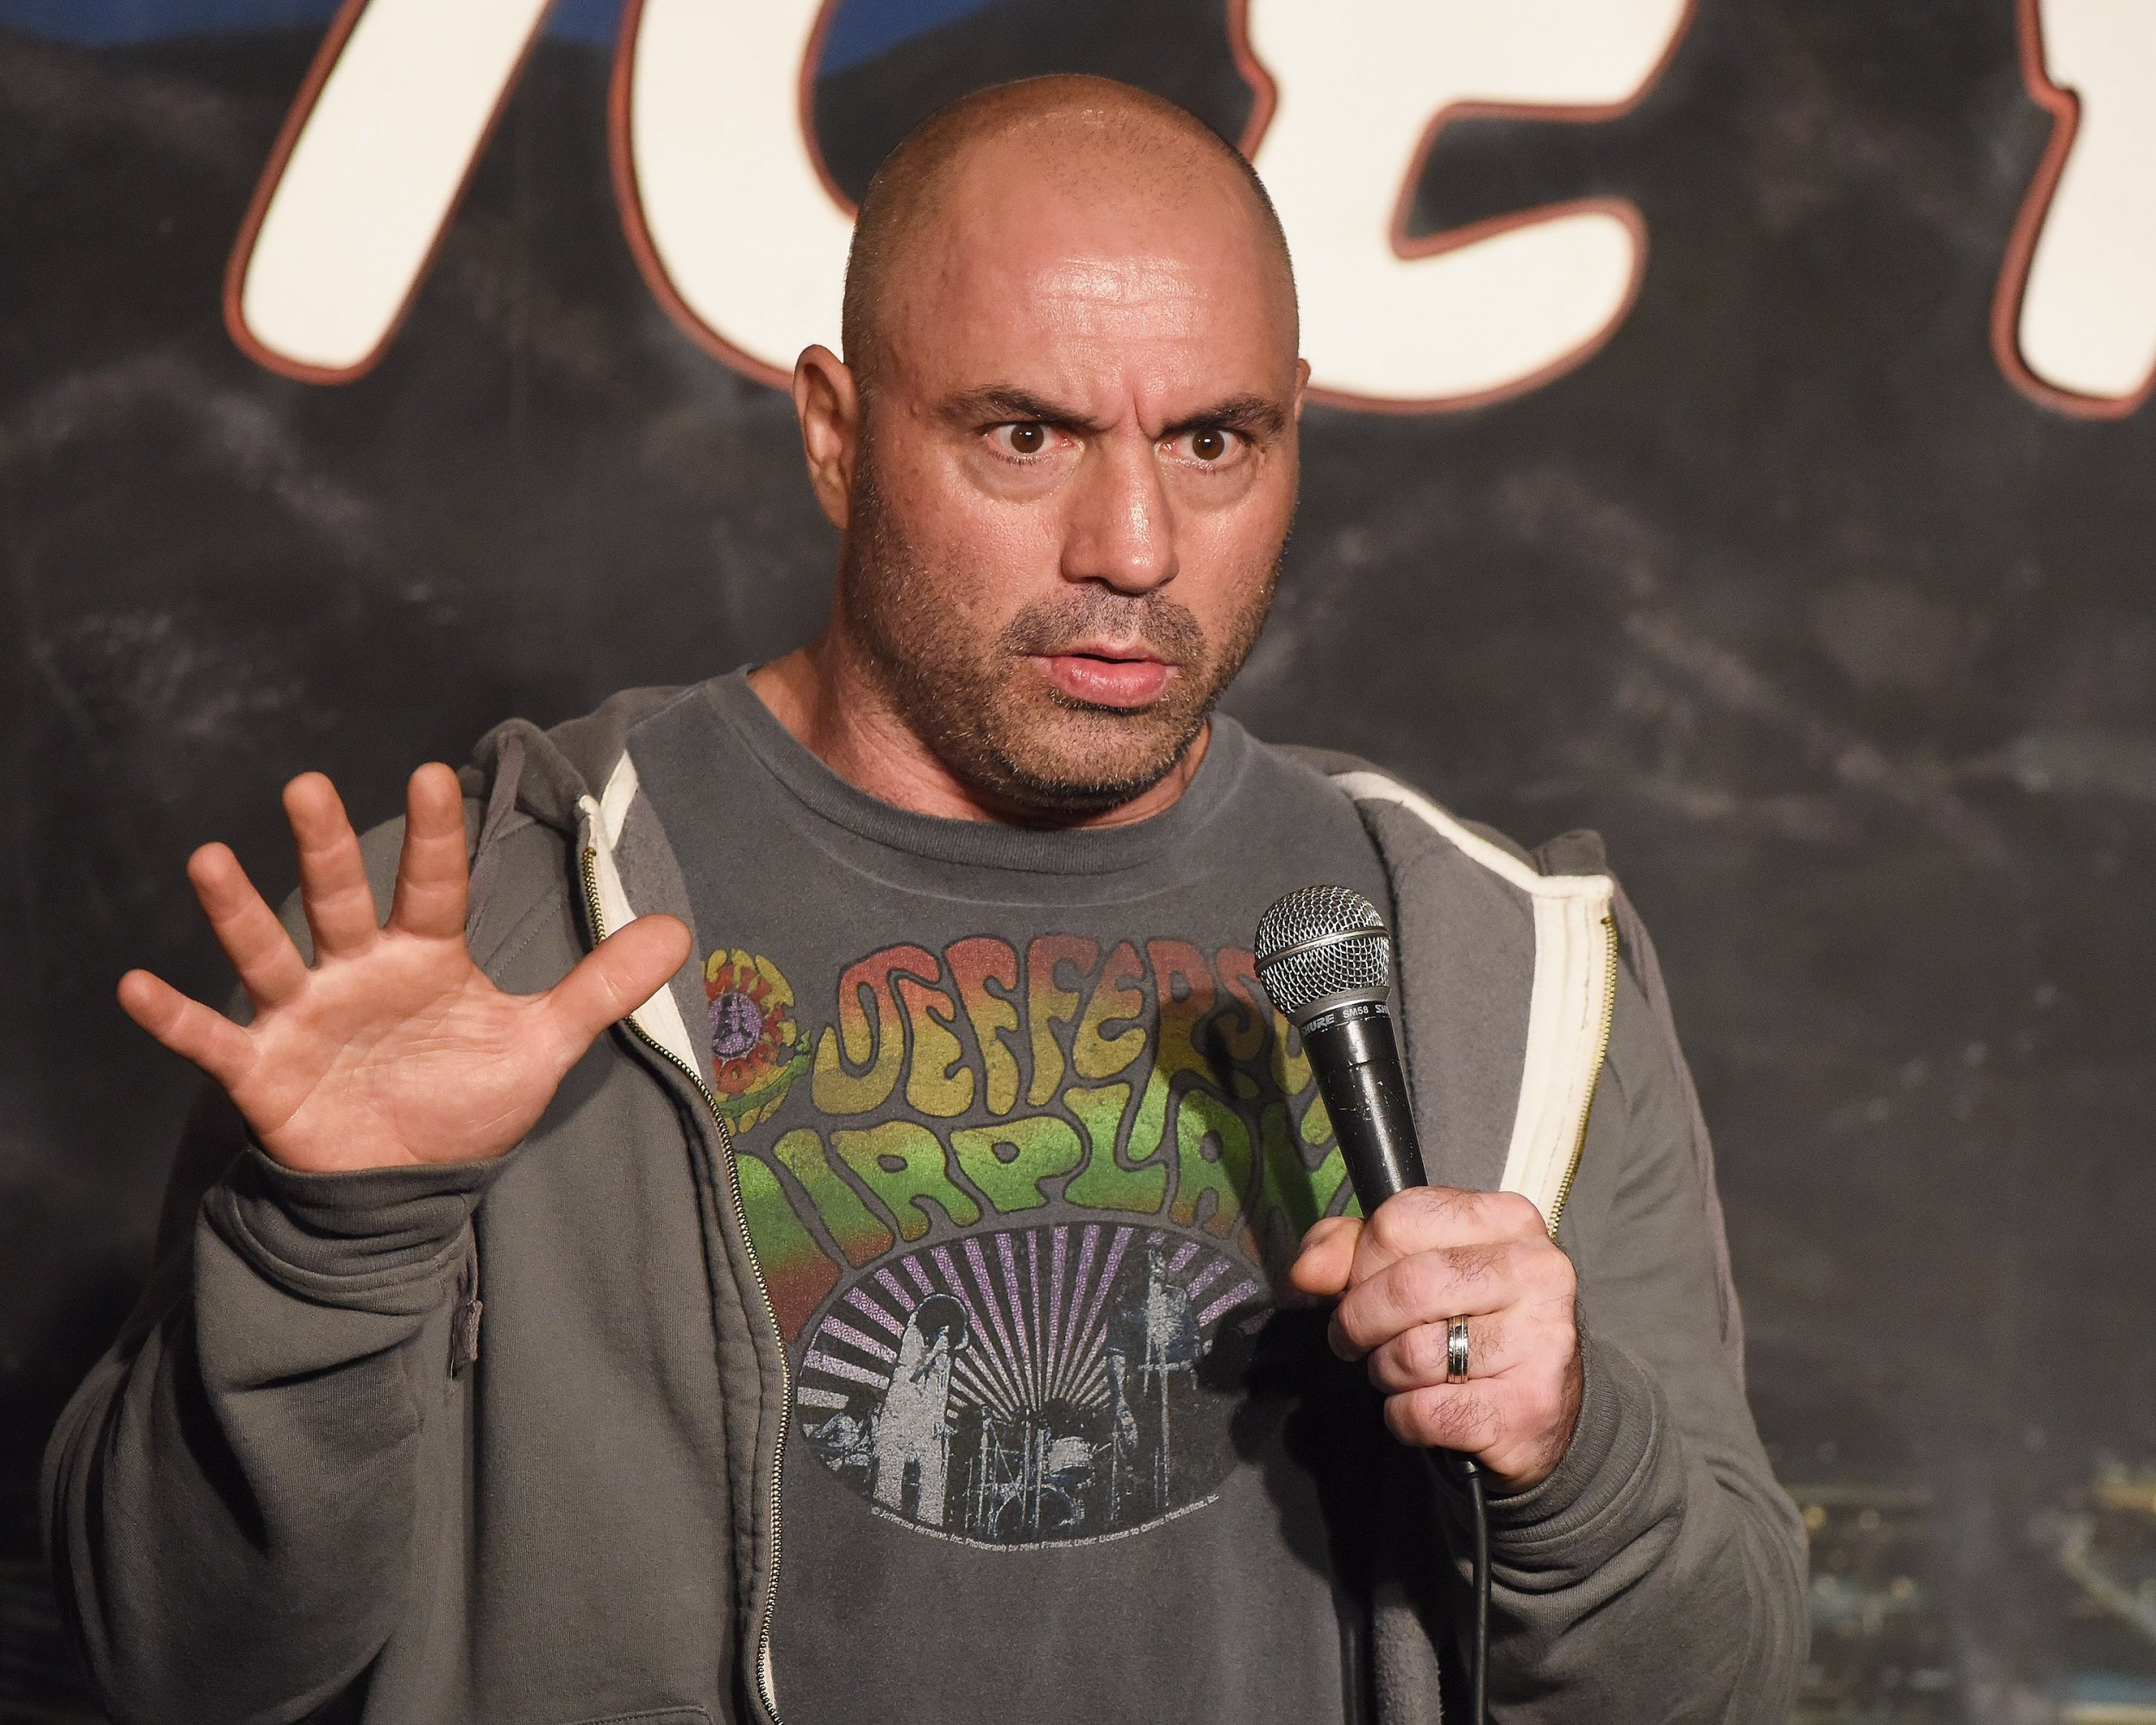 PASADENA, CA - JUNE 24: Comedian Joe Rogan performs during his appearance at The Ice House Comedy Club on June 24, 2015 in Pasadena, California. (Photo by Michael Schwartz/WireImage)